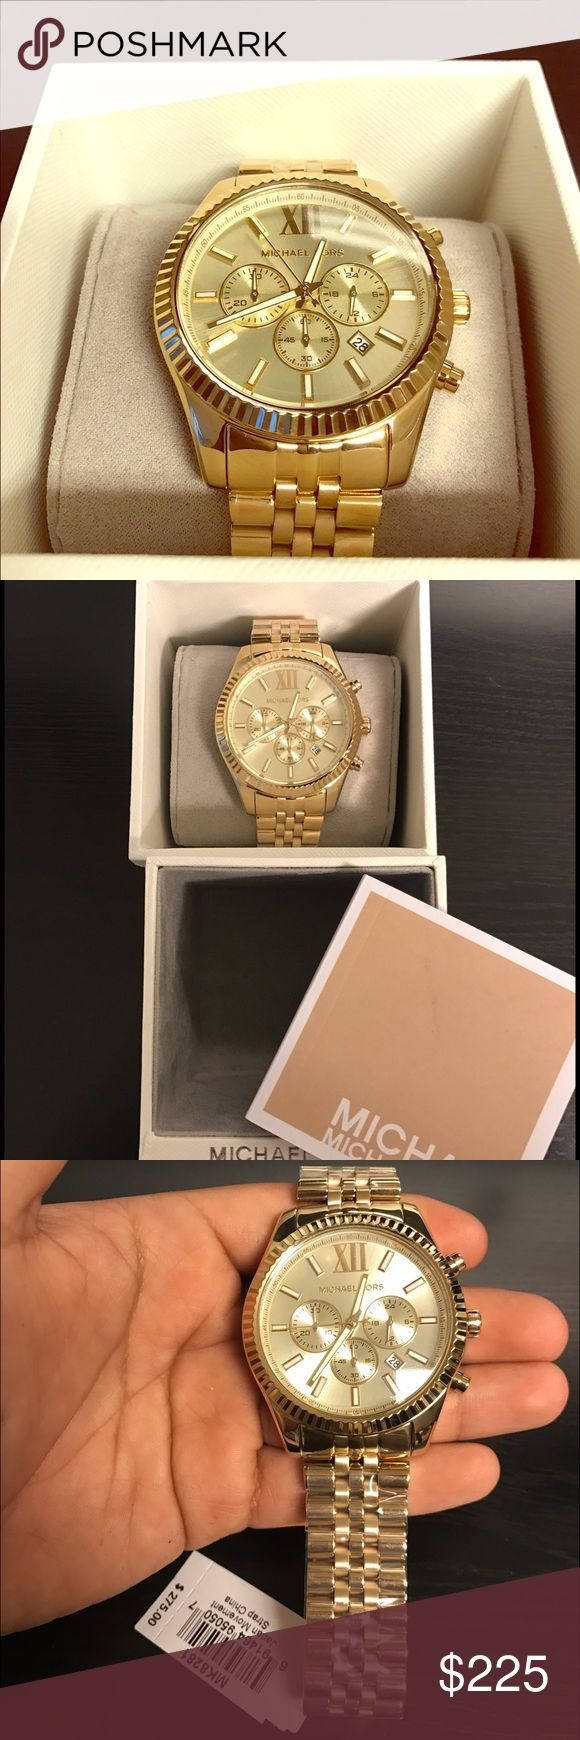 MICHAEL KORS MENS GOLD WATCH Michael Kors Lexington Gold Stainless 45mm Chronograph Mens Timepiece w/tags NIB Michael Kors Accessories Watches